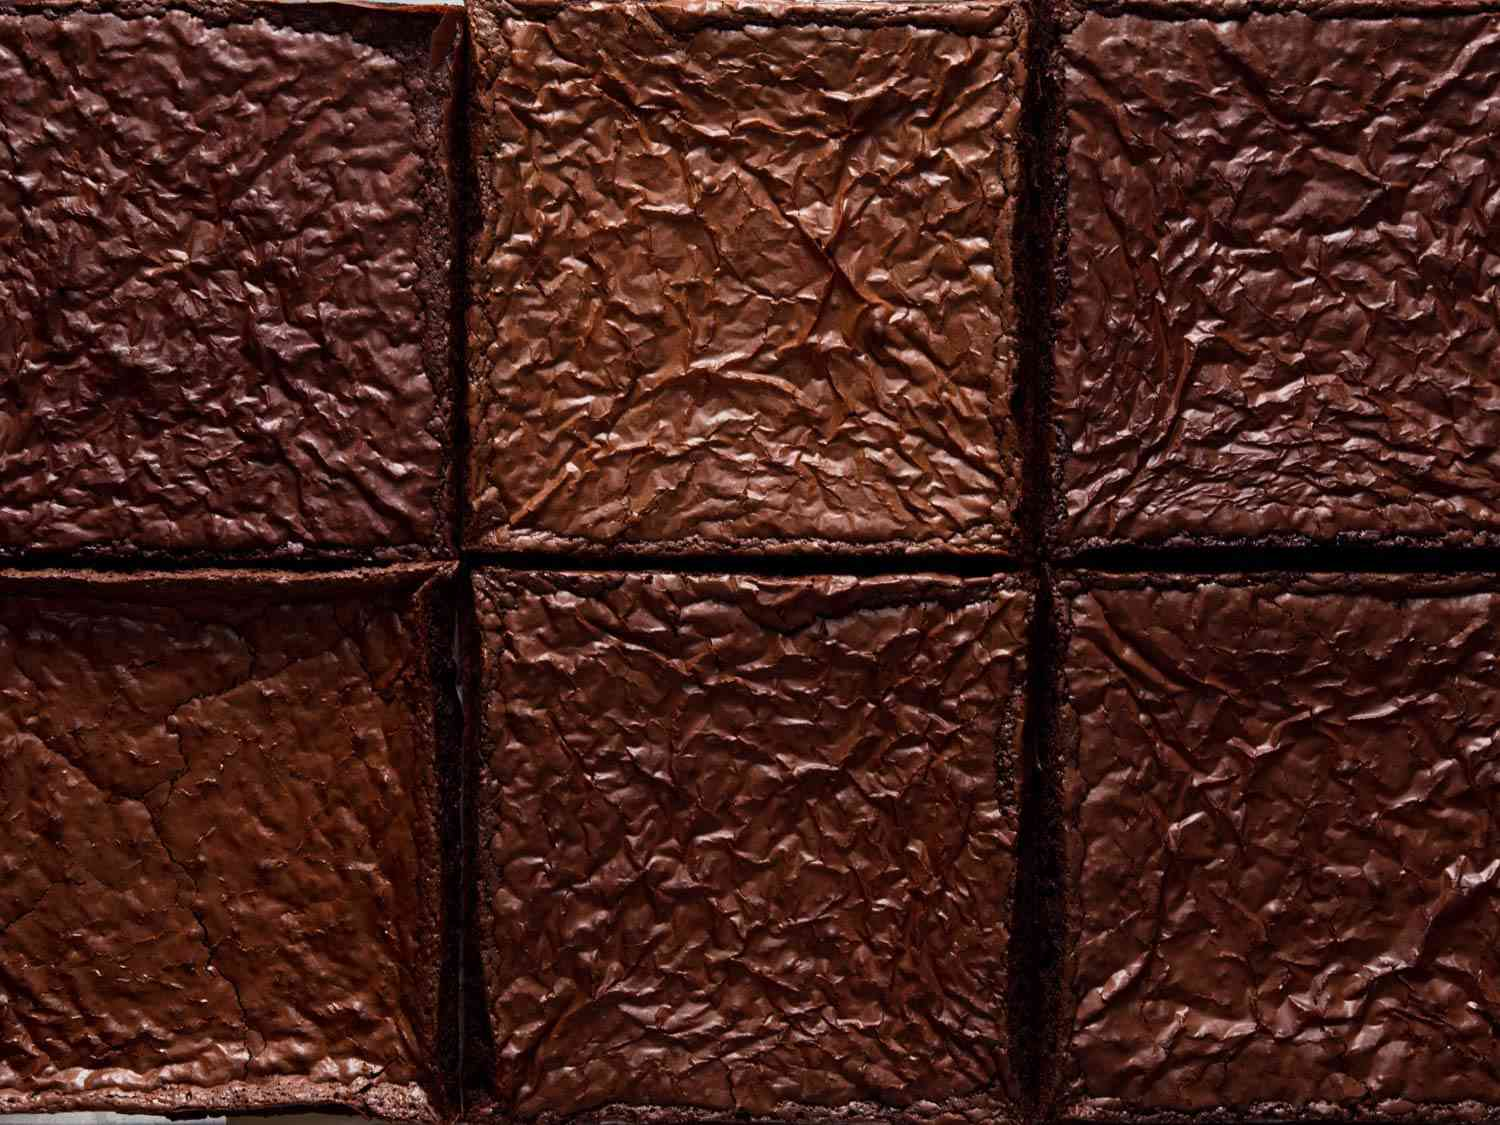 Overhead close-up of the crackly, dark-brown surface of brownies